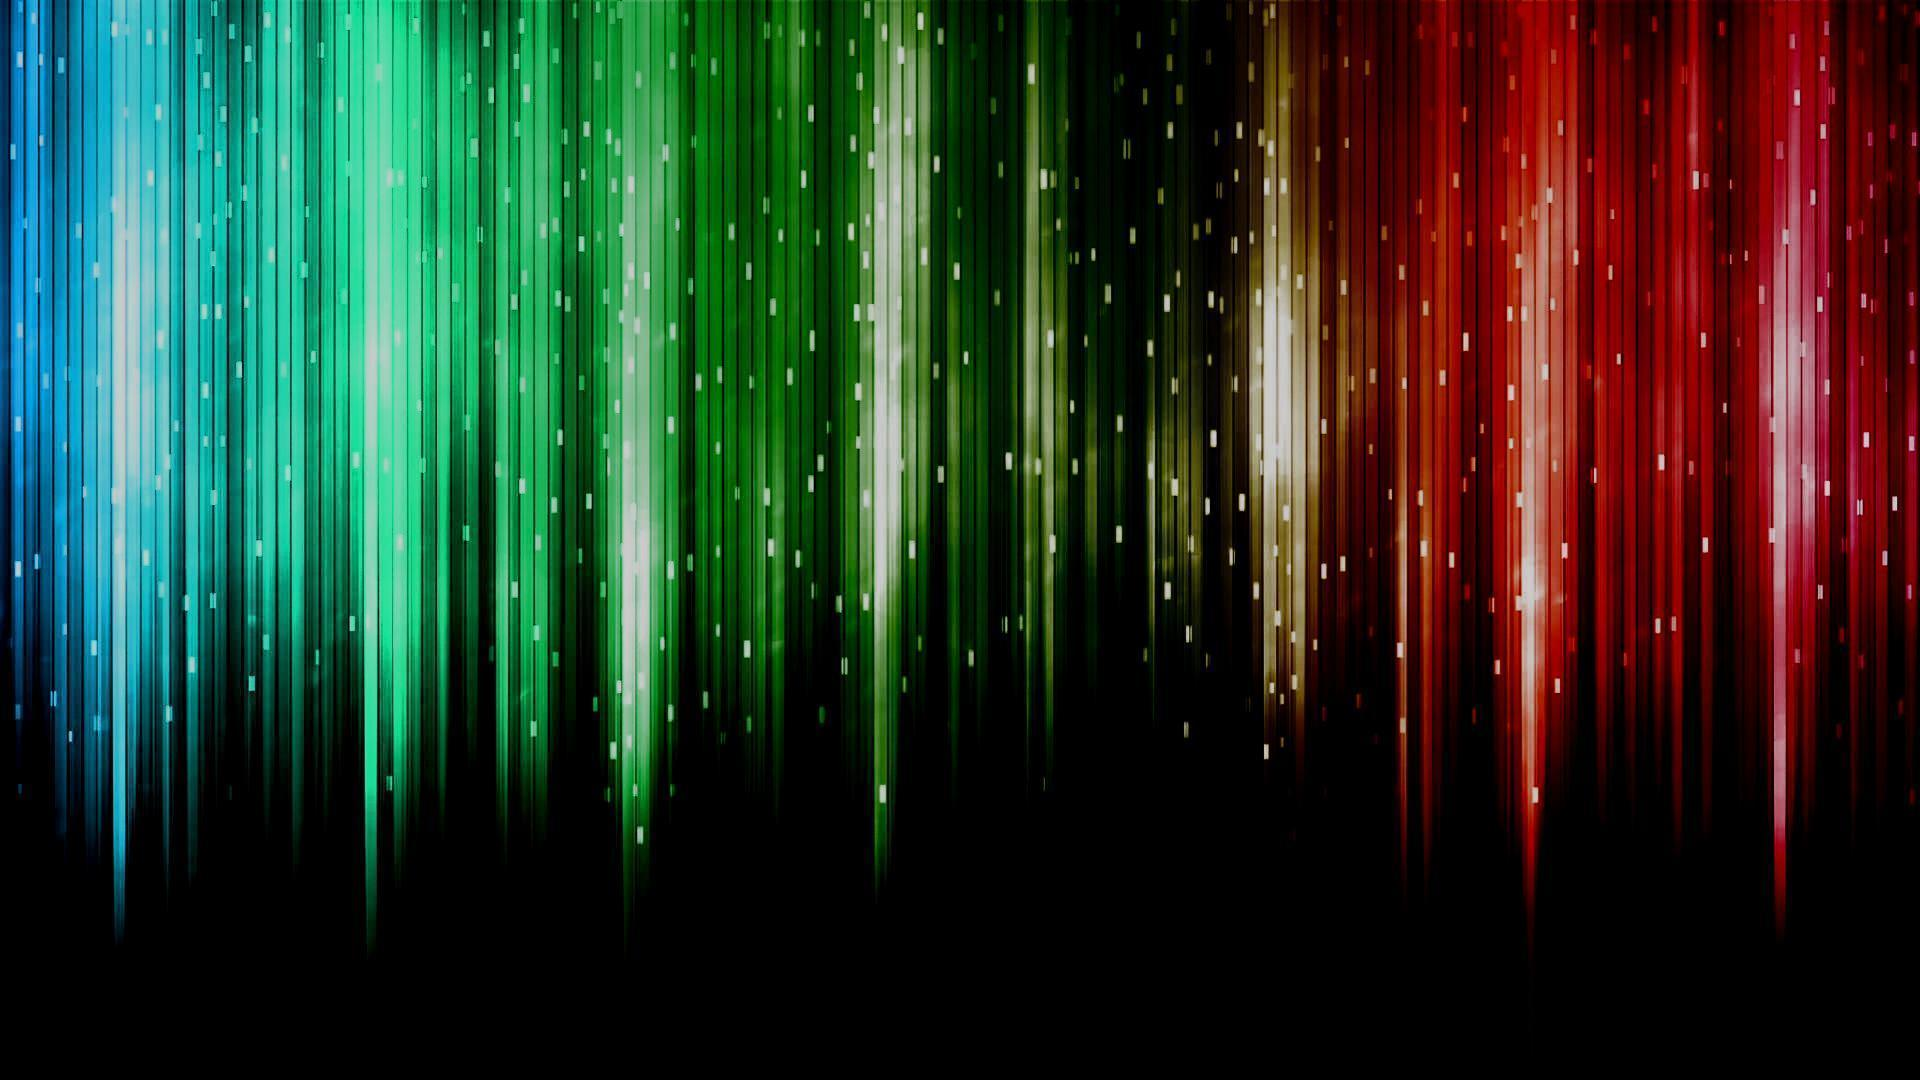 Abstract Rainbow Backgrounds Wallpapers